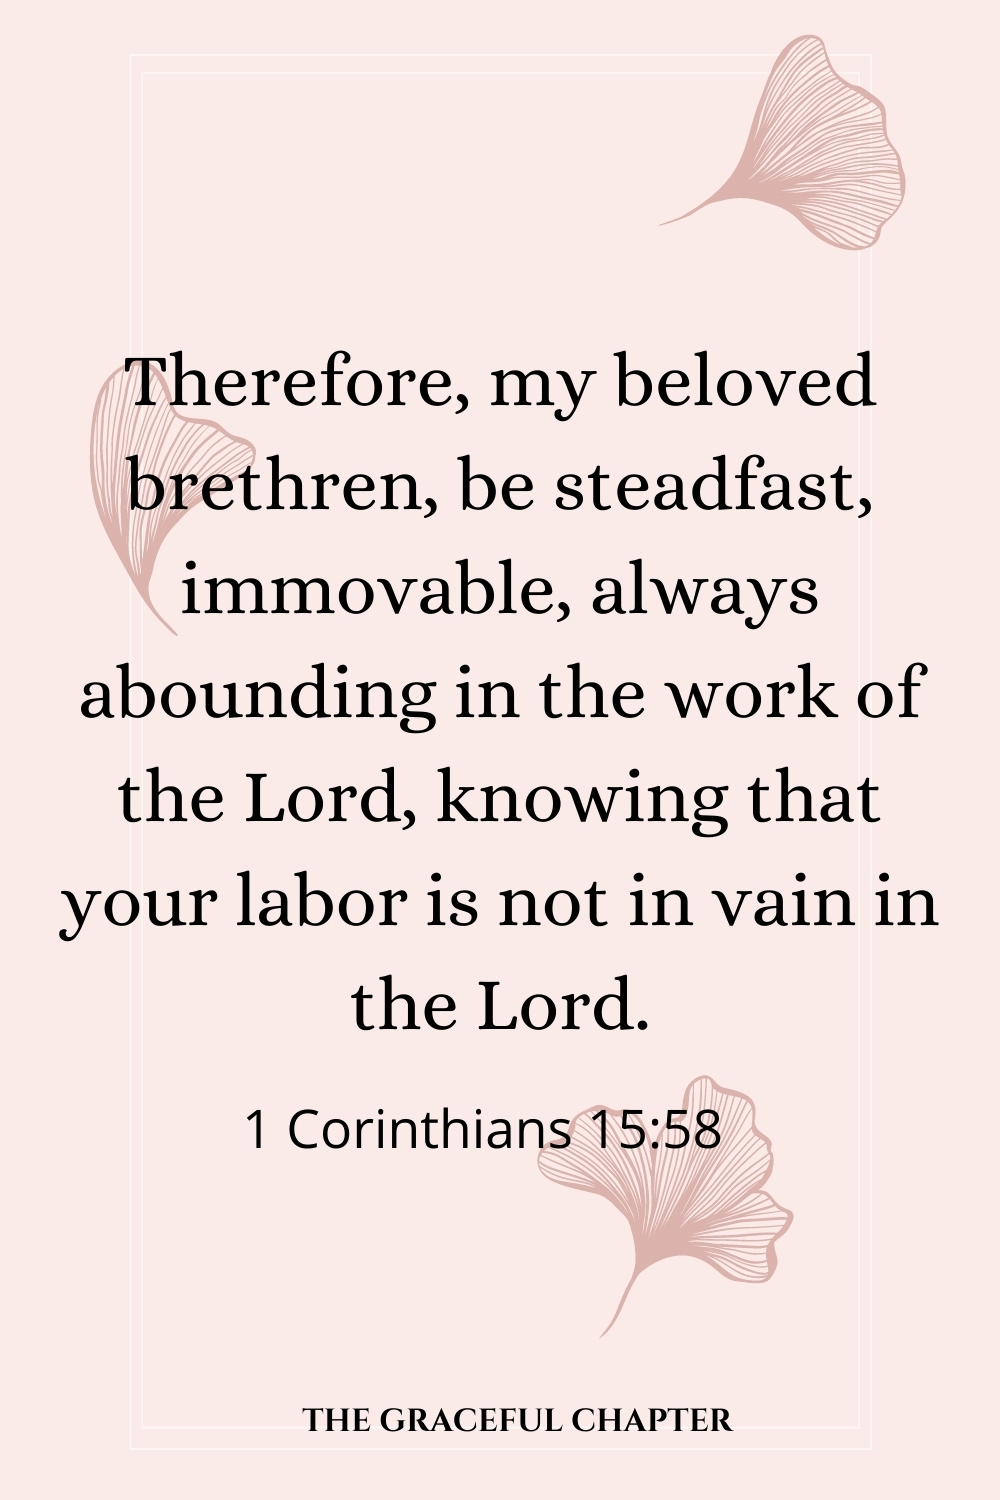 Therefore, my beloved brethren, be steadfast, immovable, always abounding in the work of the Lord, knowing that your labor is not in vain in the Lord. 1 Corinthians 15:58